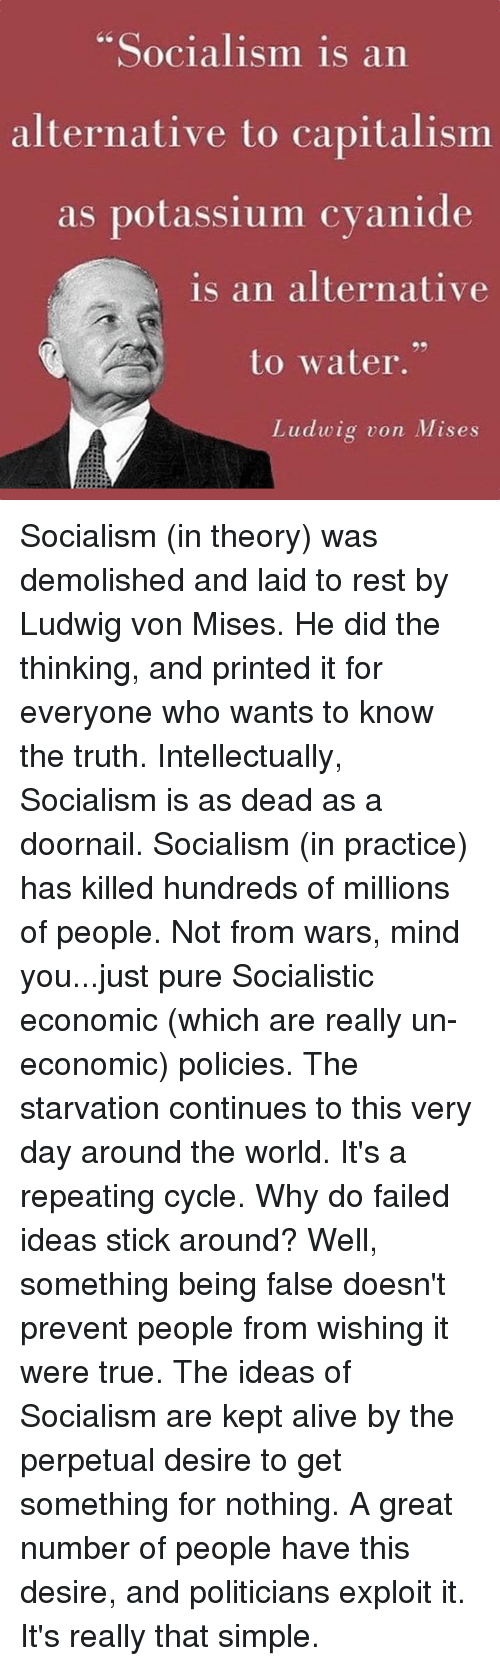 """Potassium: Socialism is an  alternative to capitalismm  as potassium cvanide  is an alternative  to water.""""  Ludwig von Mises Socialism (in theory) was demolished and laid to rest by Ludwig von Mises. He did the thinking, and printed it for everyone who wants to know the truth.  Intellectually, Socialism is as dead as a doornail.  Socialism (in practice) has killed hundreds of millions of people. Not from wars, mind you...just pure Socialistic economic (which are really un-economic) policies.  The starvation continues to this very day around the world. It's a repeating cycle.  Why do failed ideas stick around?  Well, something being false doesn't prevent people from wishing it were true.  The ideas of Socialism are kept alive by the perpetual desire to get something for nothing.   A great number of people have this desire, and politicians exploit it.  It's really that simple."""